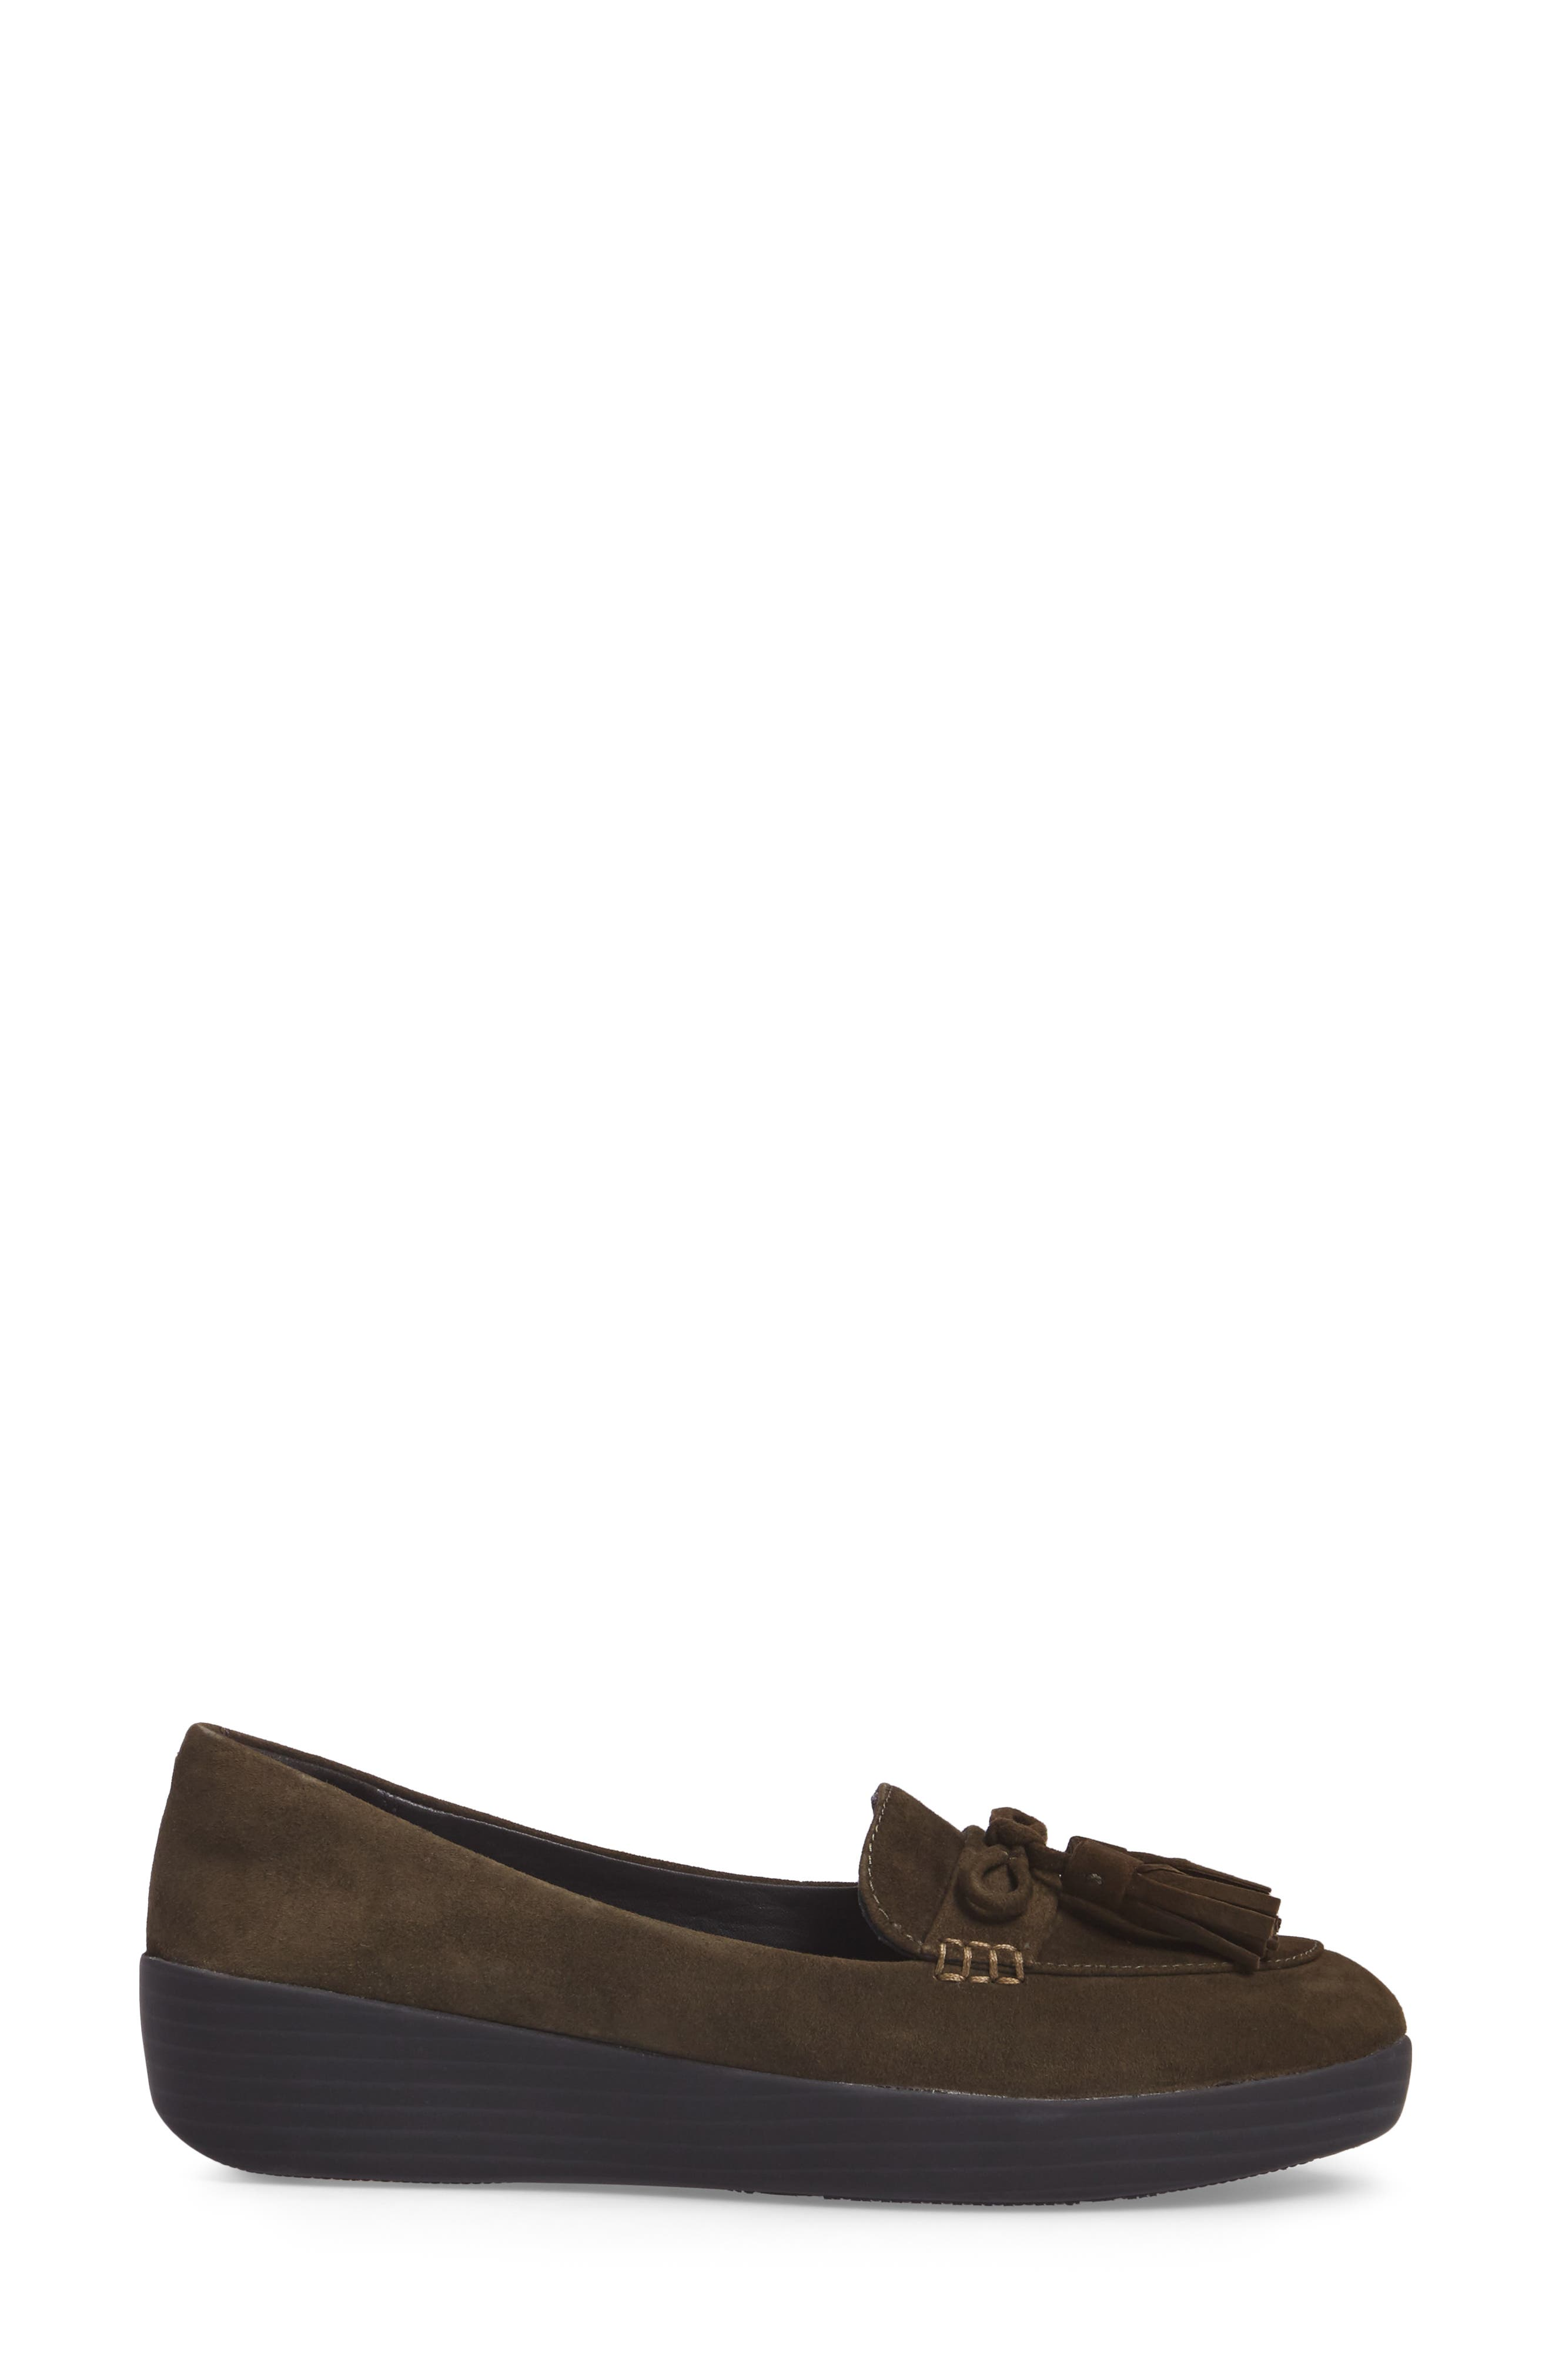 Tassel Bow Sneakerloafer<sup>™</sup> Water Repellent Flat,                             Alternate thumbnail 10, color,